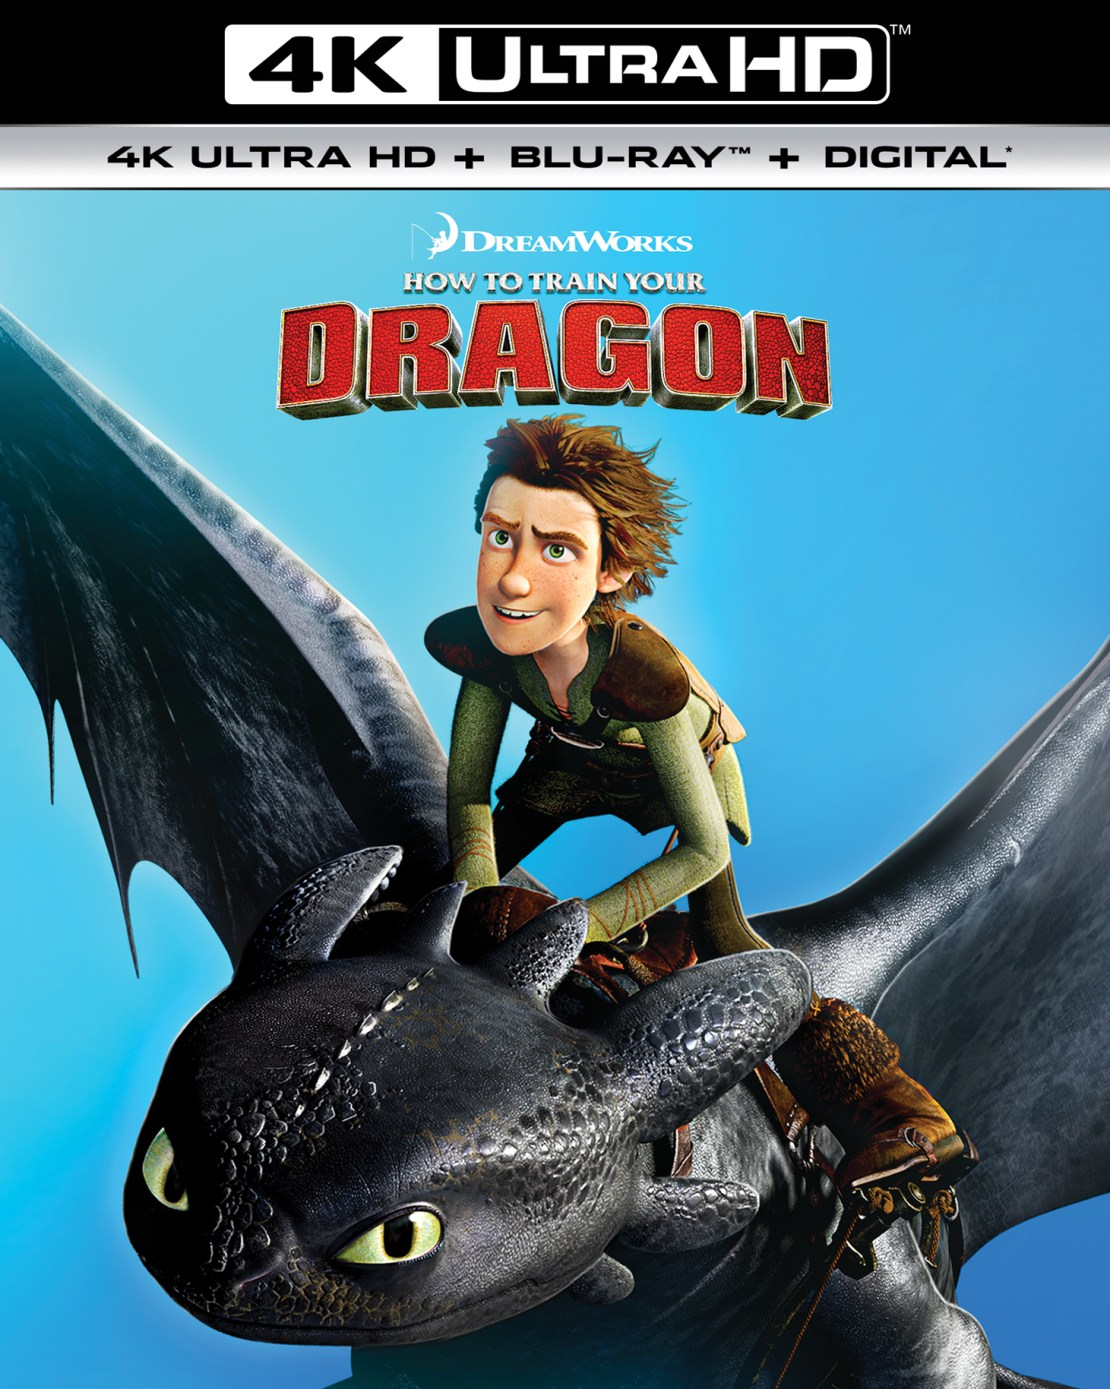 How to Train Your Dragon [Includes Digital Copy] [4K Ultra HD Blu-ray/Blu-ray] [2010]